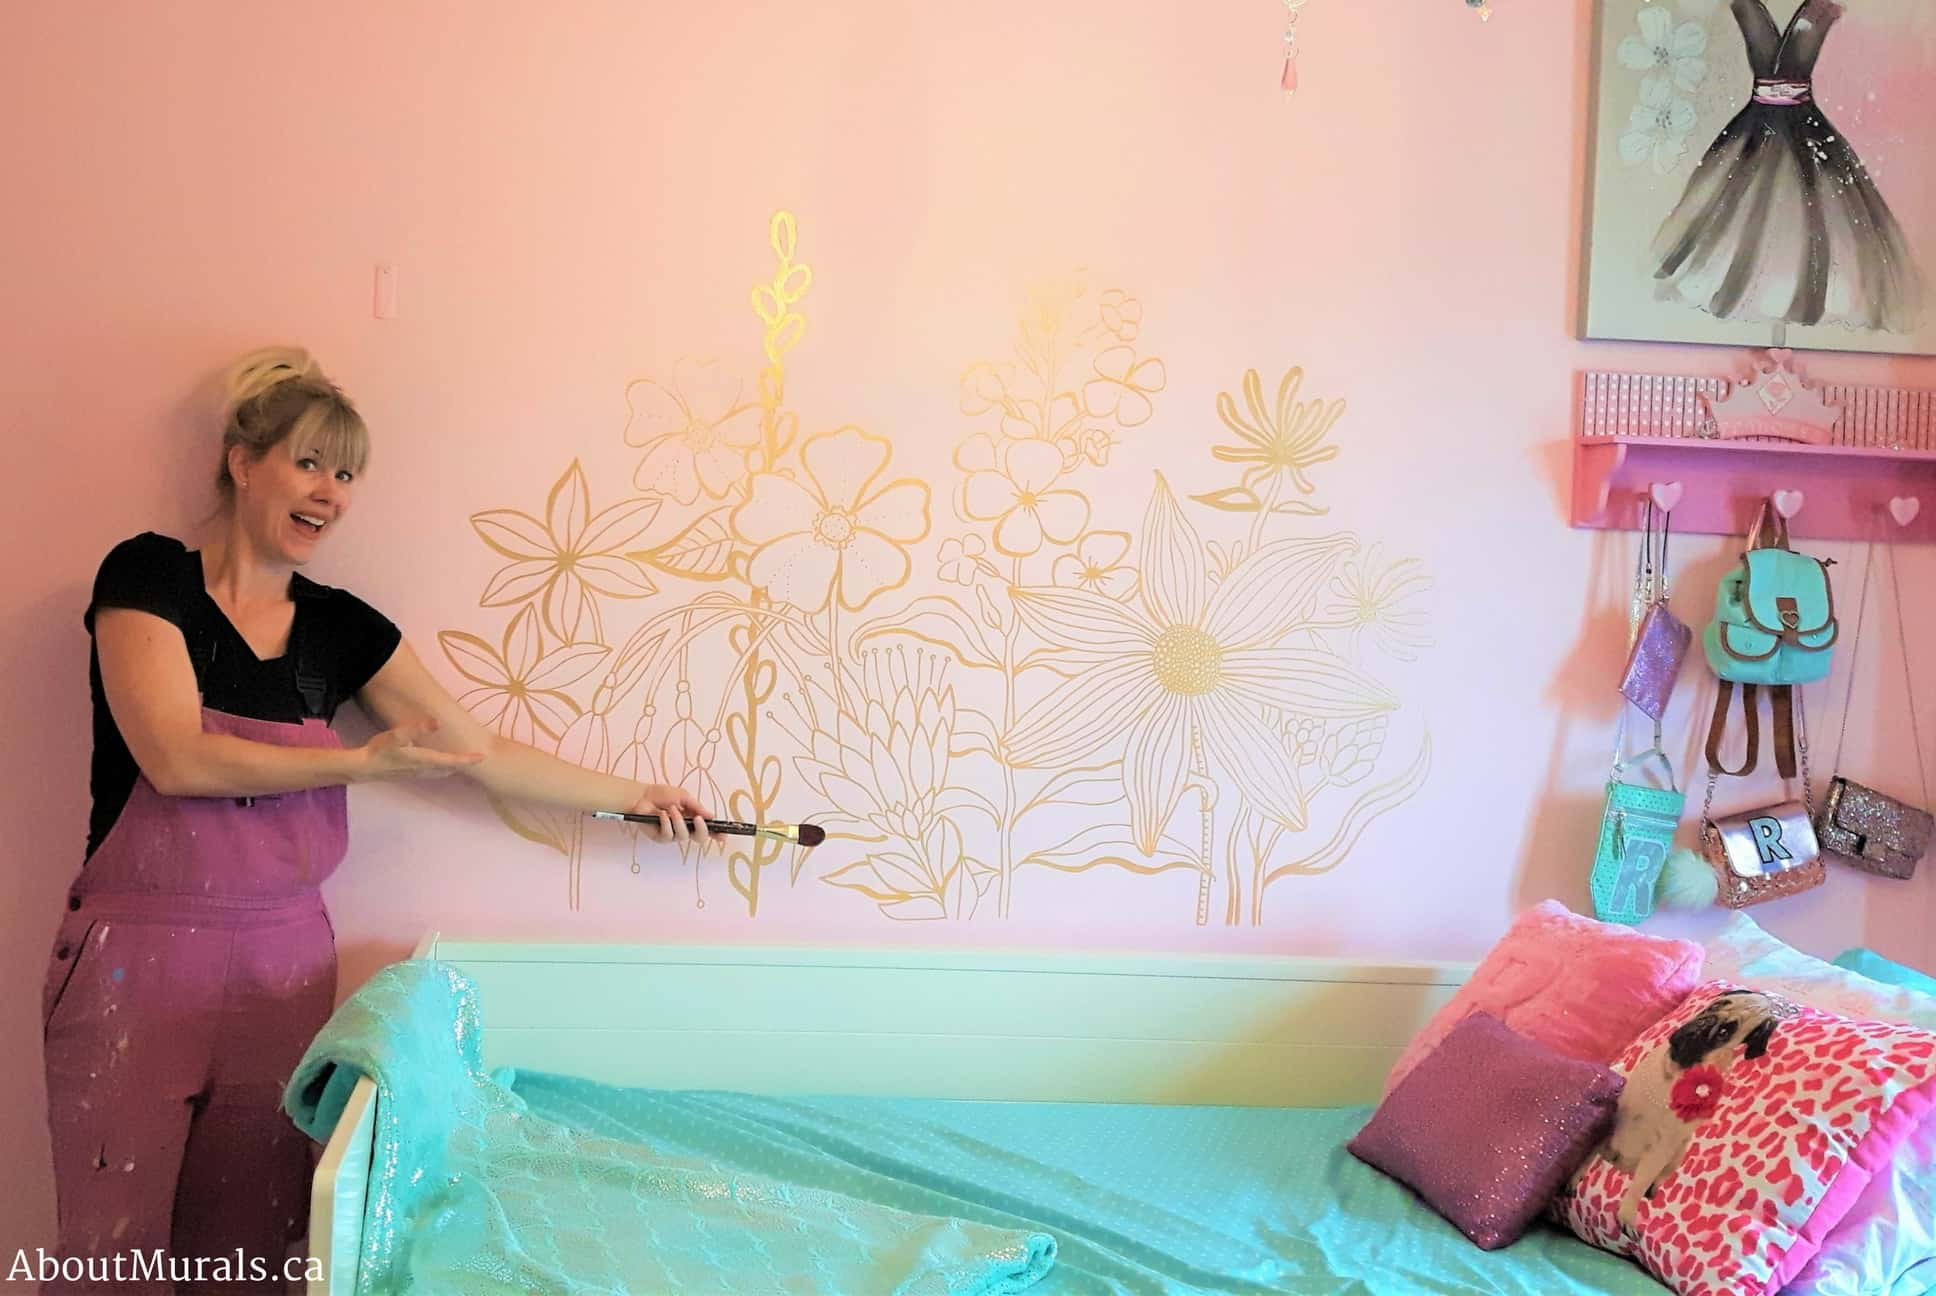 Mural painter Adrienne Scanlan stands beside a kids wall mural featuring flowers painted in gold on a pink wall